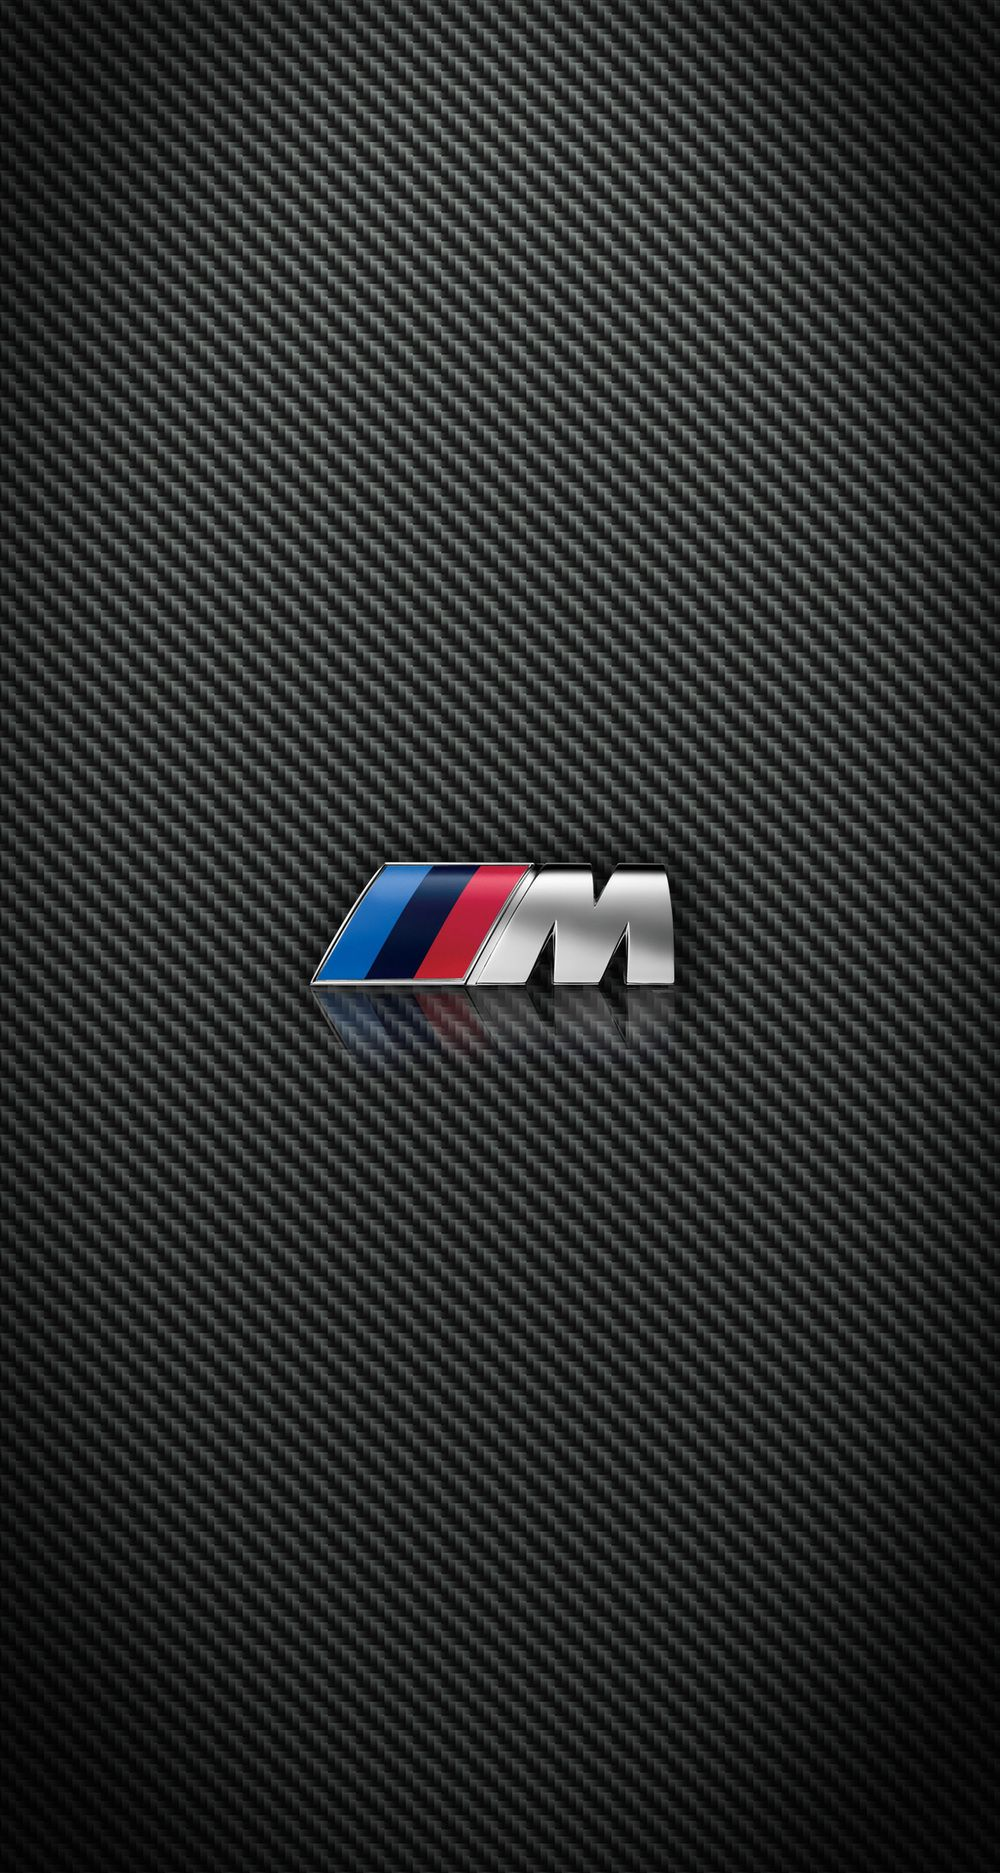 1000x1873 Carbon Fiber BMW and M Power iPhone wallpapers for iPhone 6 Plus ...